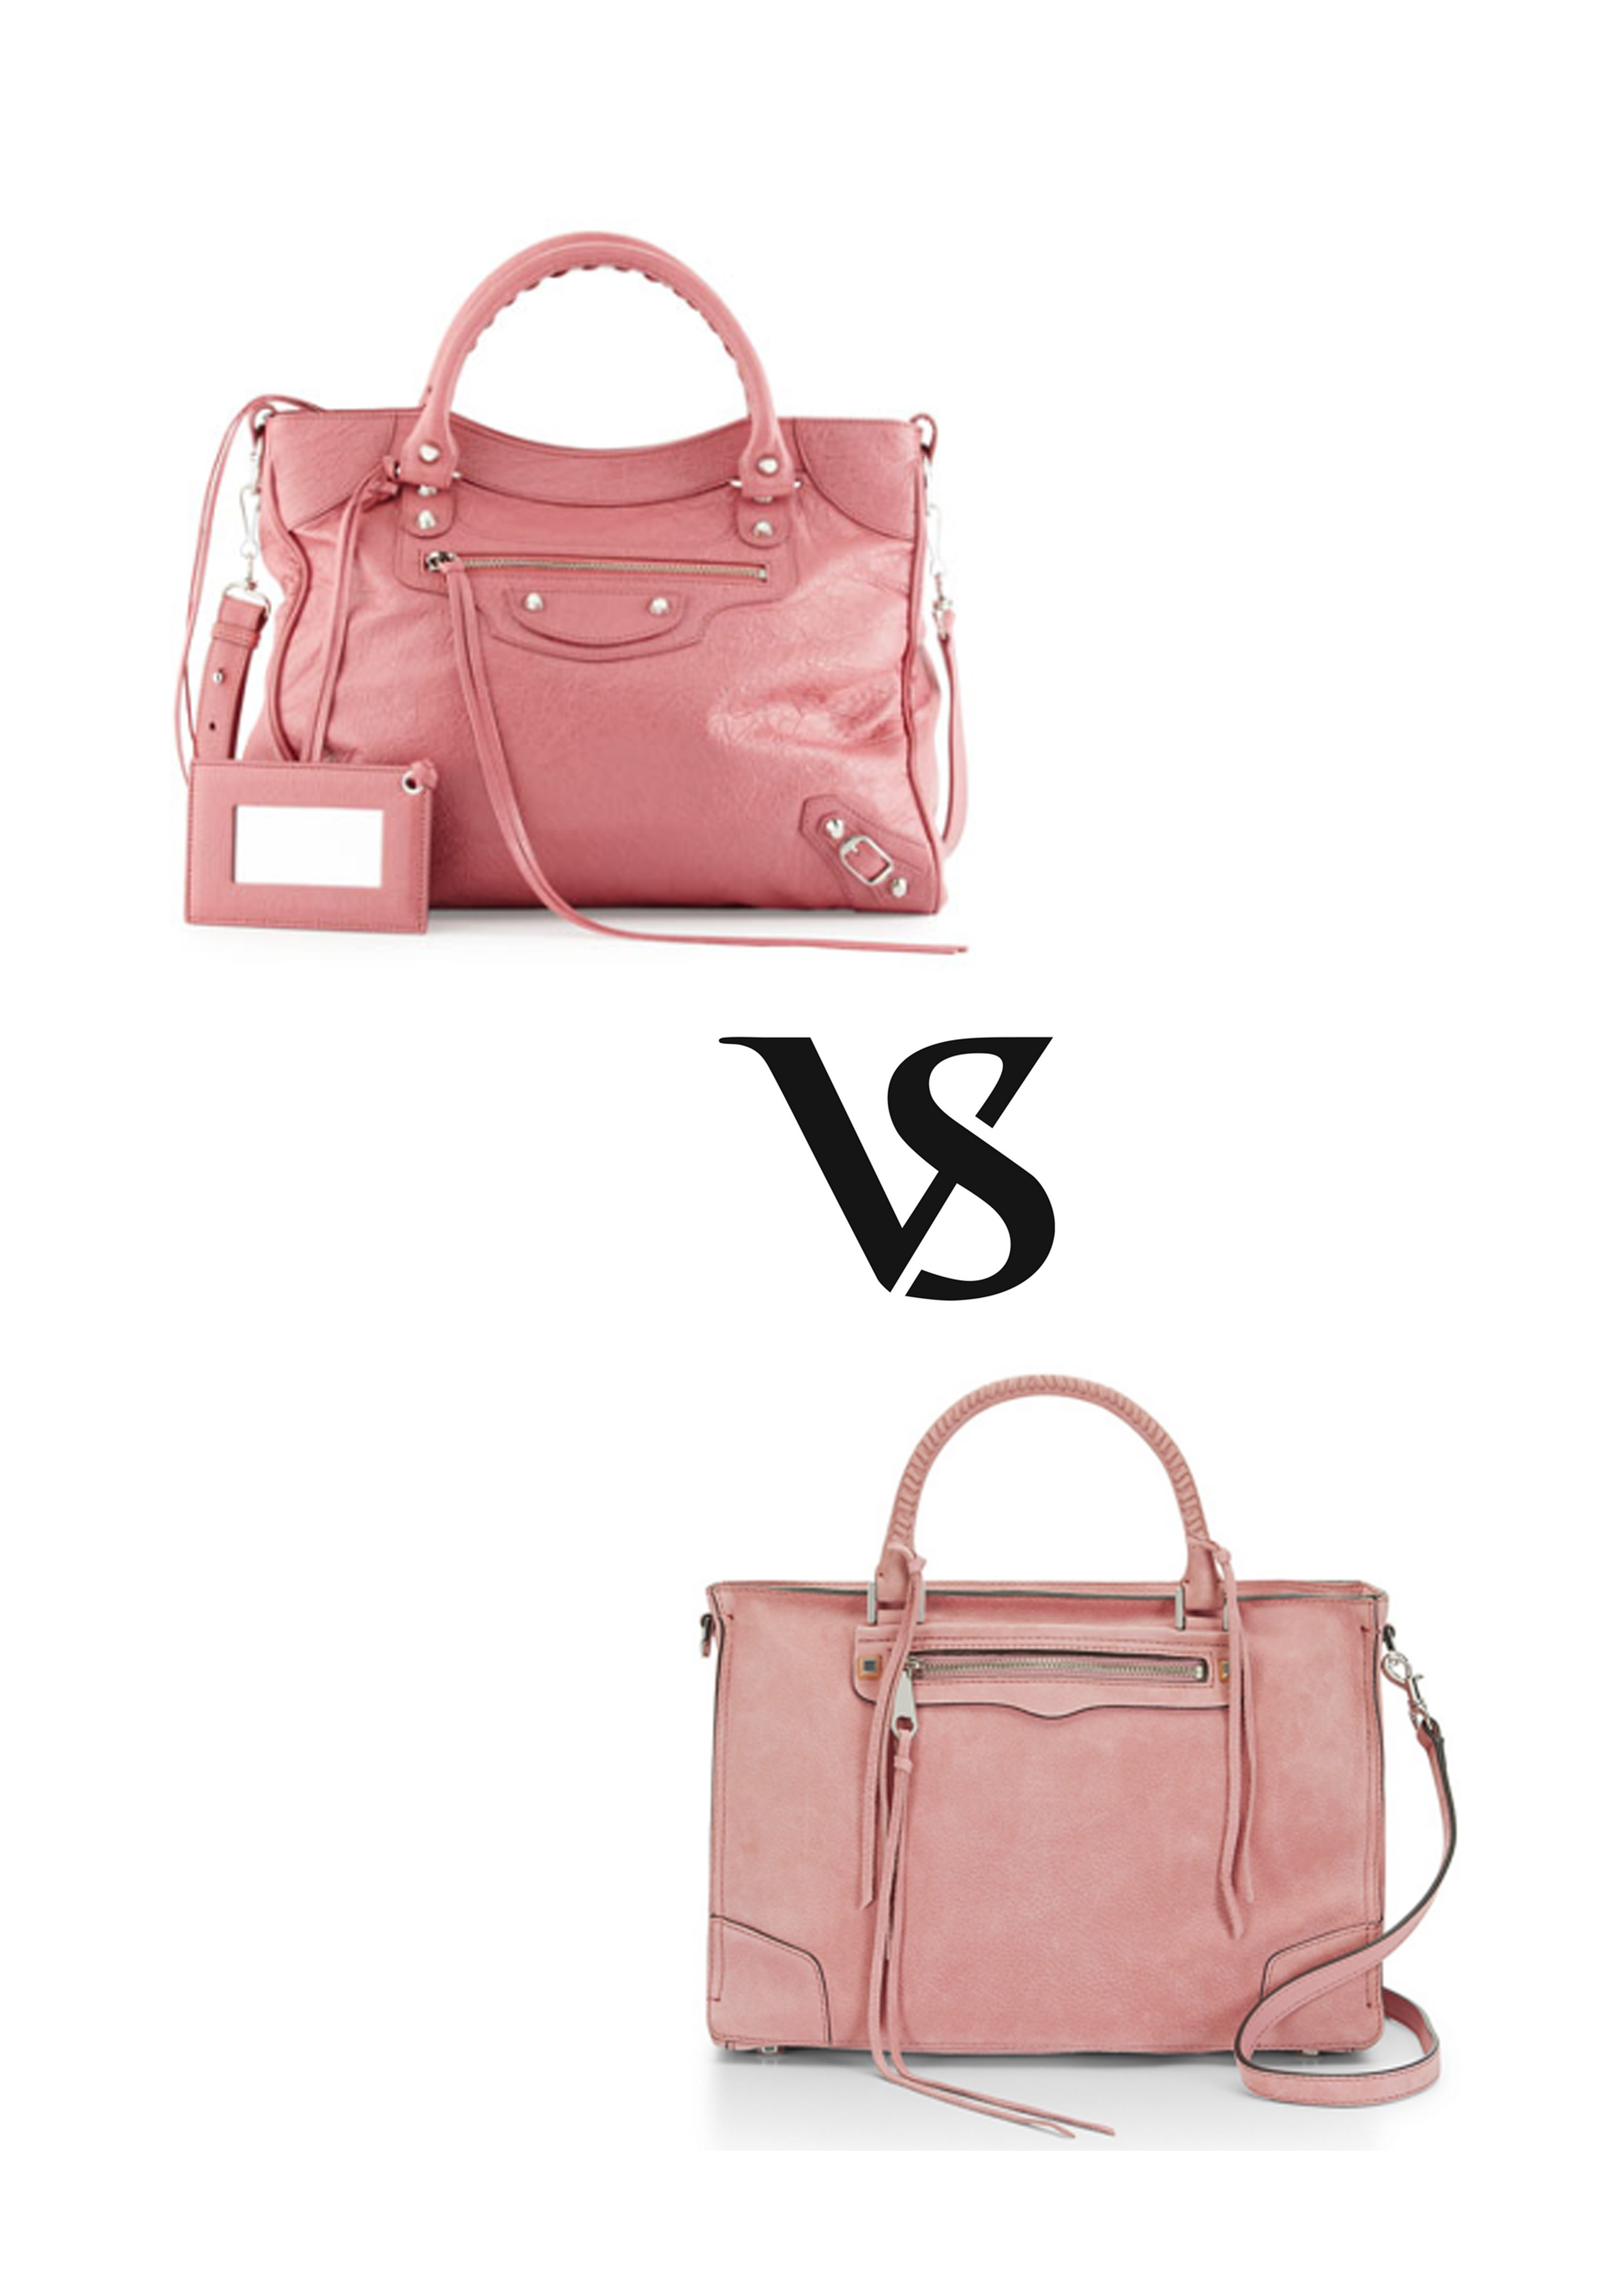 The Battle Of The Bags Balenciaga Vs Rebecca Minkoff